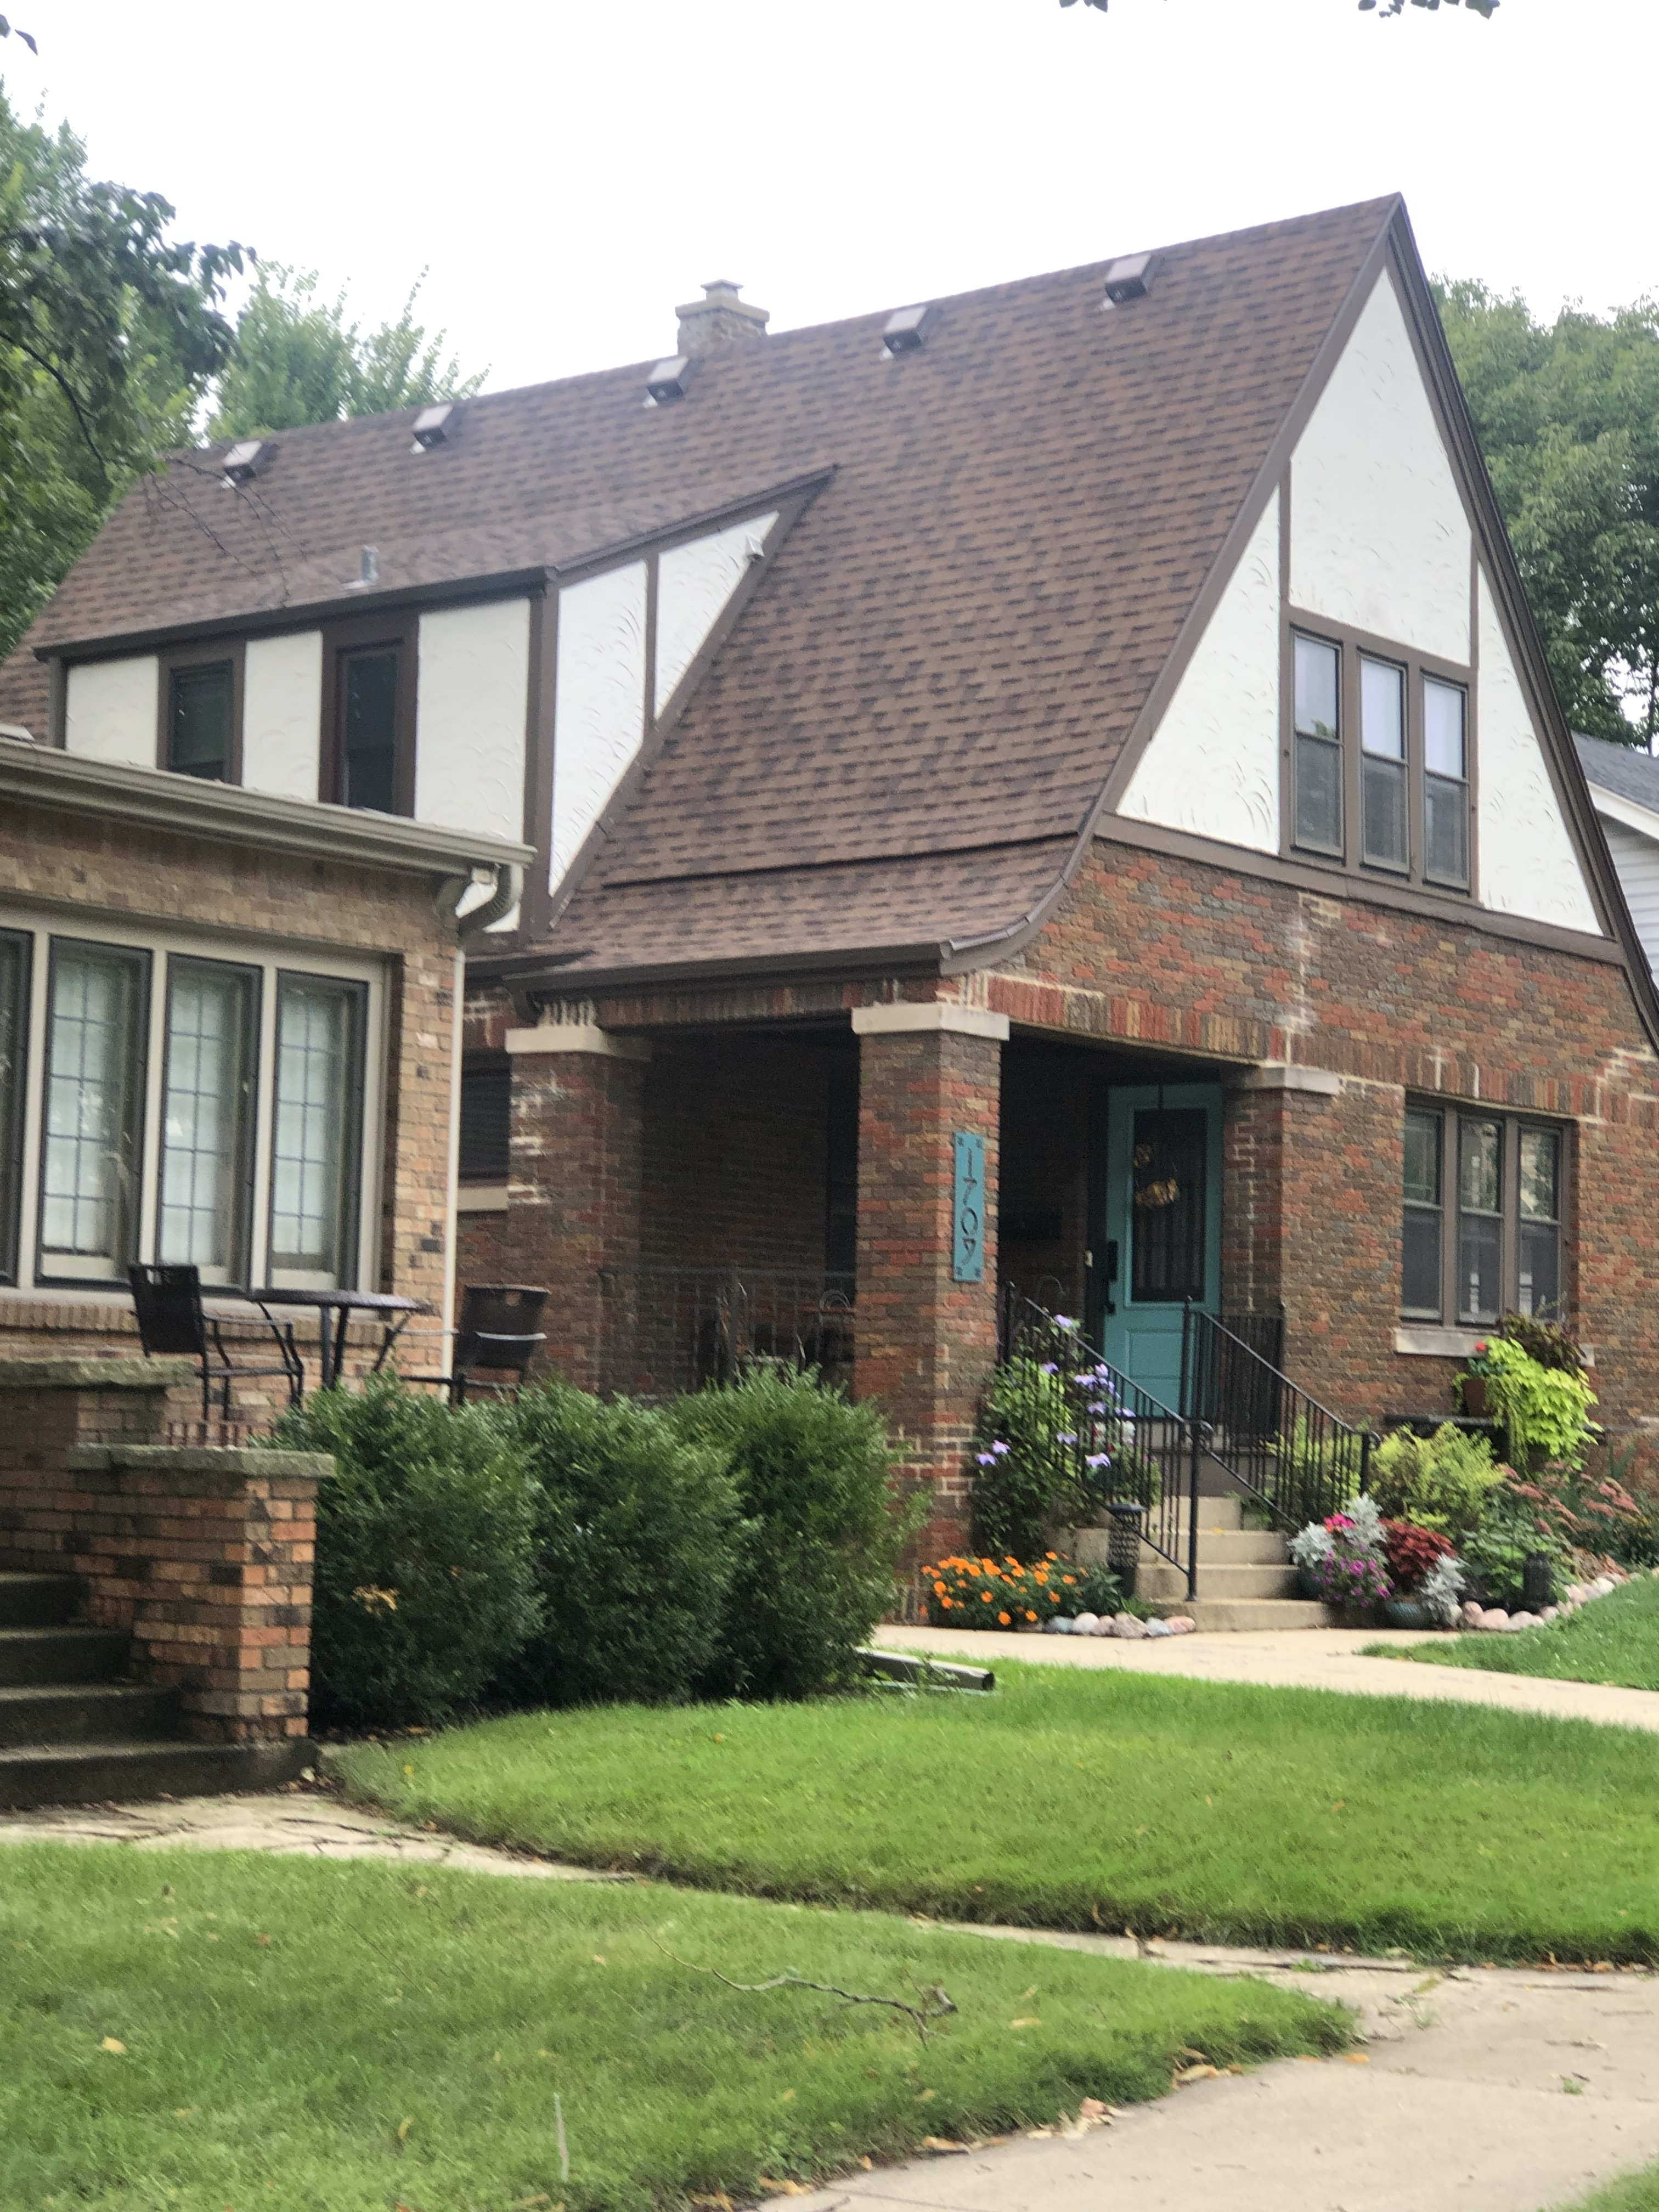 Wisconsin Roofing LLC   Wauwatosa   Best Roofing Company   Added intake attic ventilation Nail pops leaks from a poor install 9 years ago